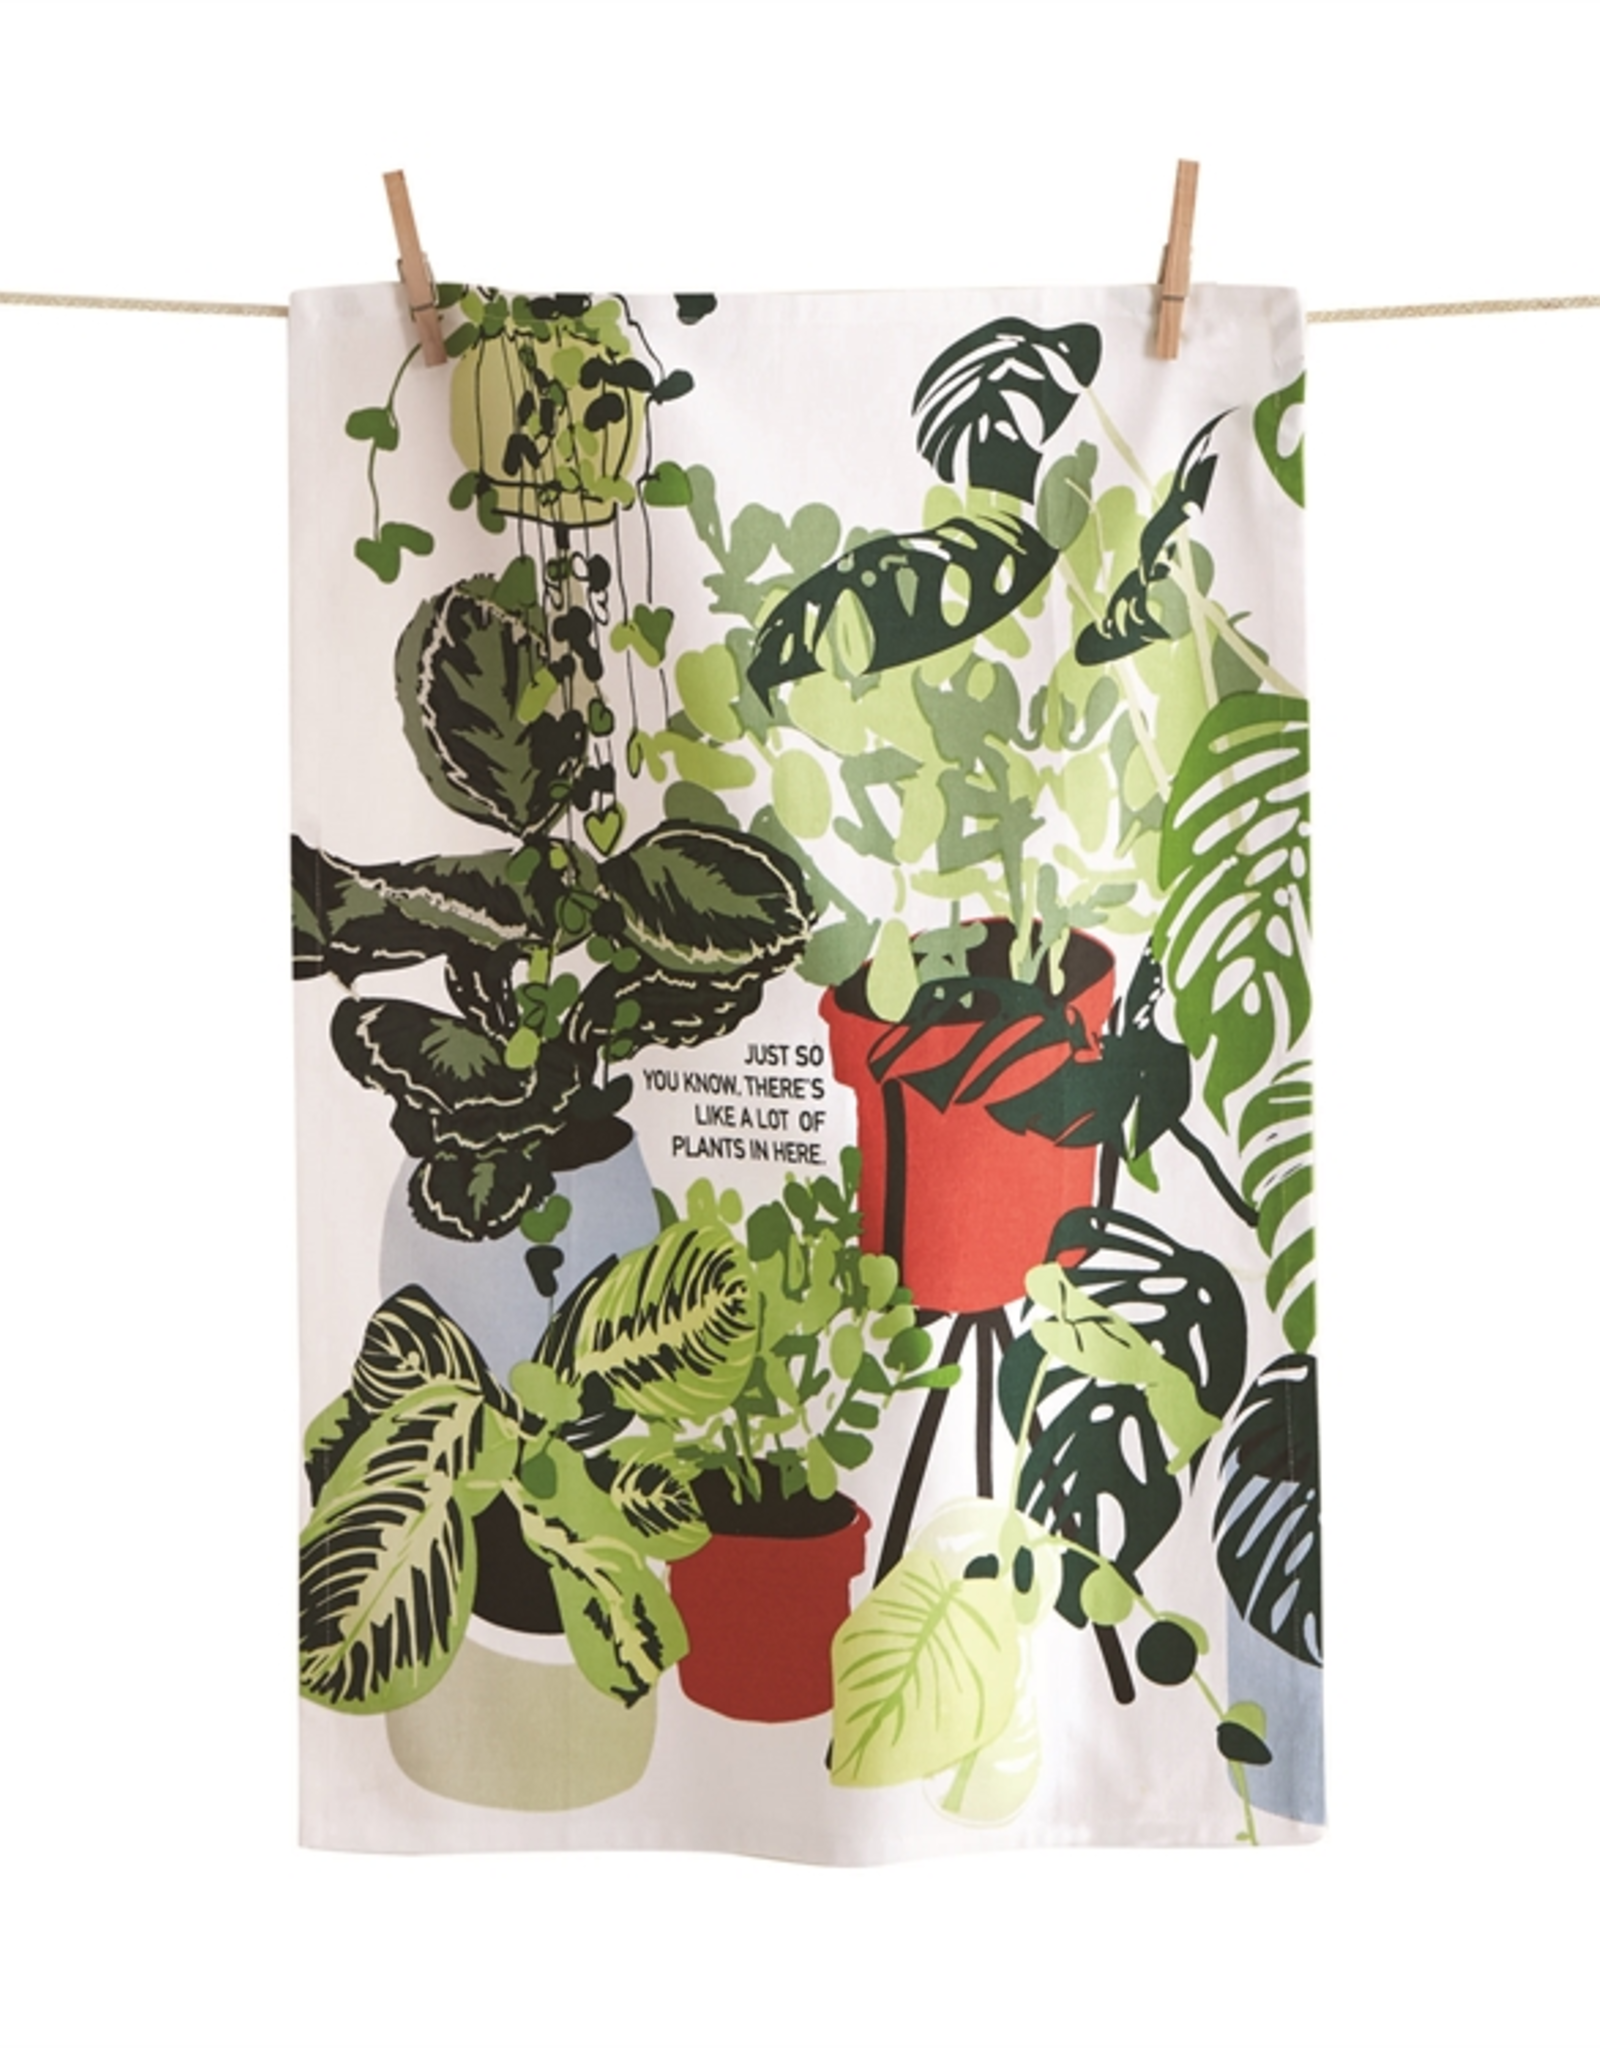 Tag Dishtowel - Lots of Plants in Here